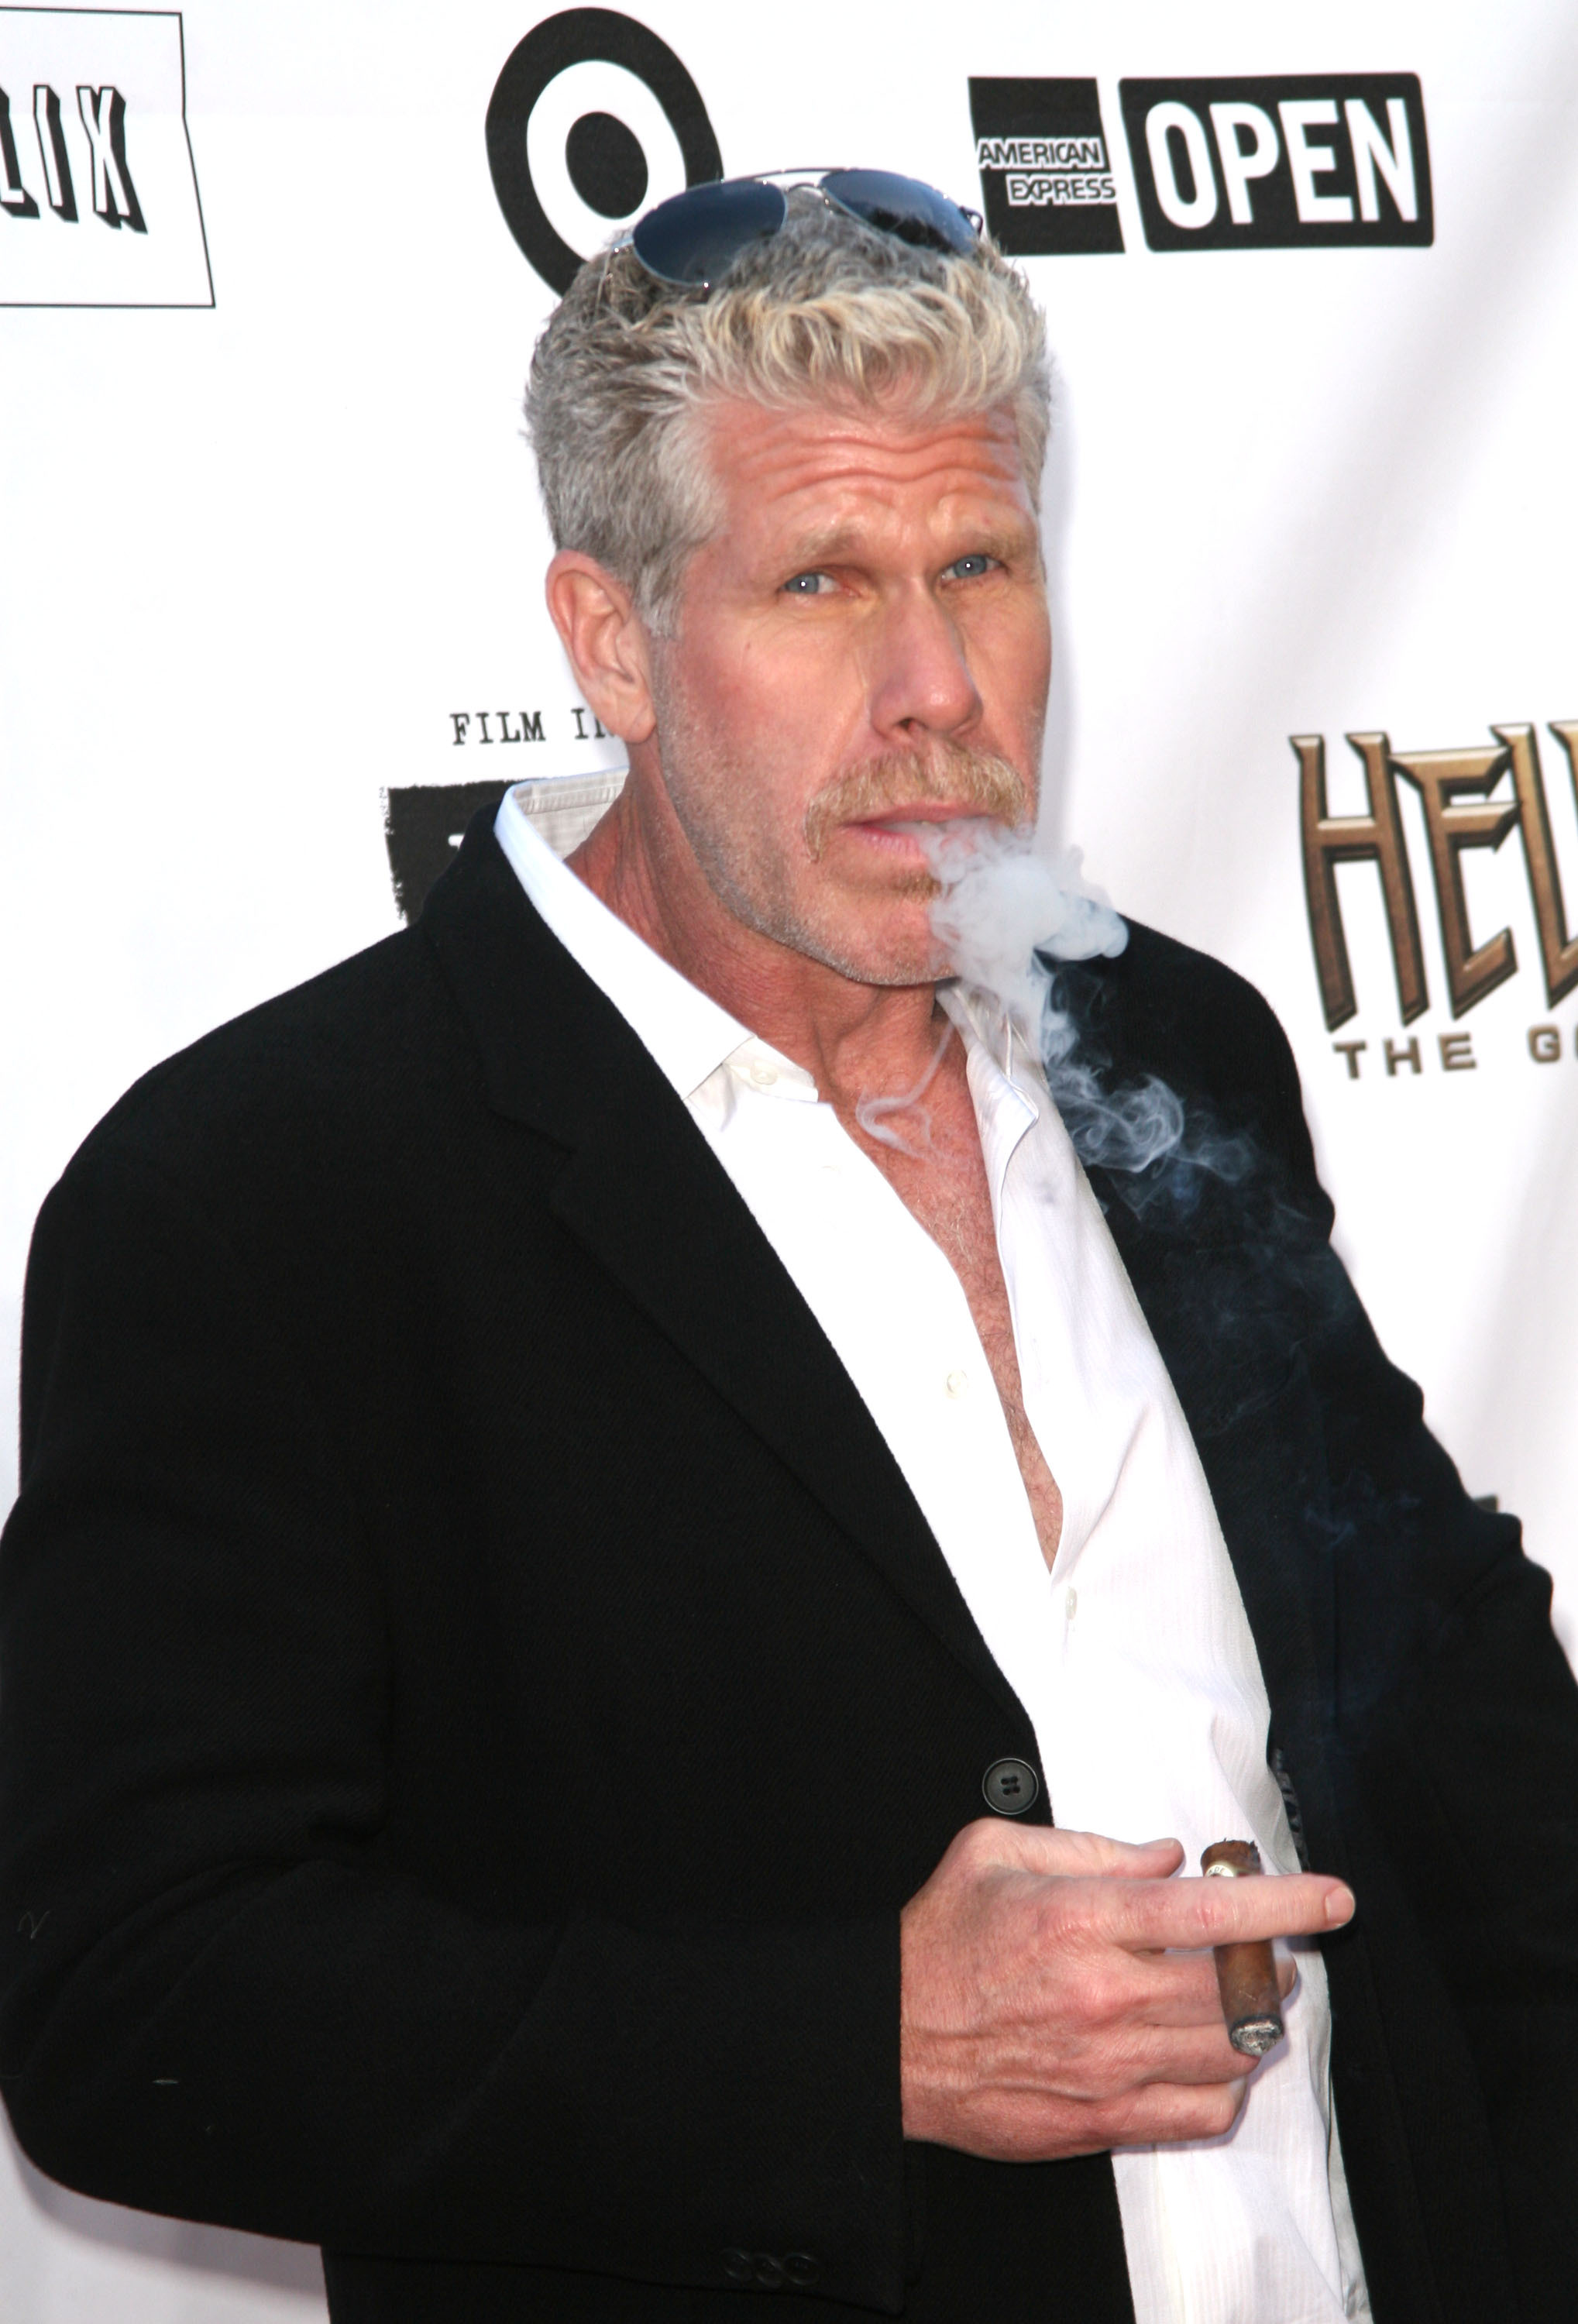 Ron Perlman The 'Hellboy 2: The Golden Army' premiere at the Mann Village Theater Los Angeles, California - 28.06.08  Featuring: Ron Perlman Where: California, United States When: 28 Jun 2008 Credit: WENN/Fayes Vision